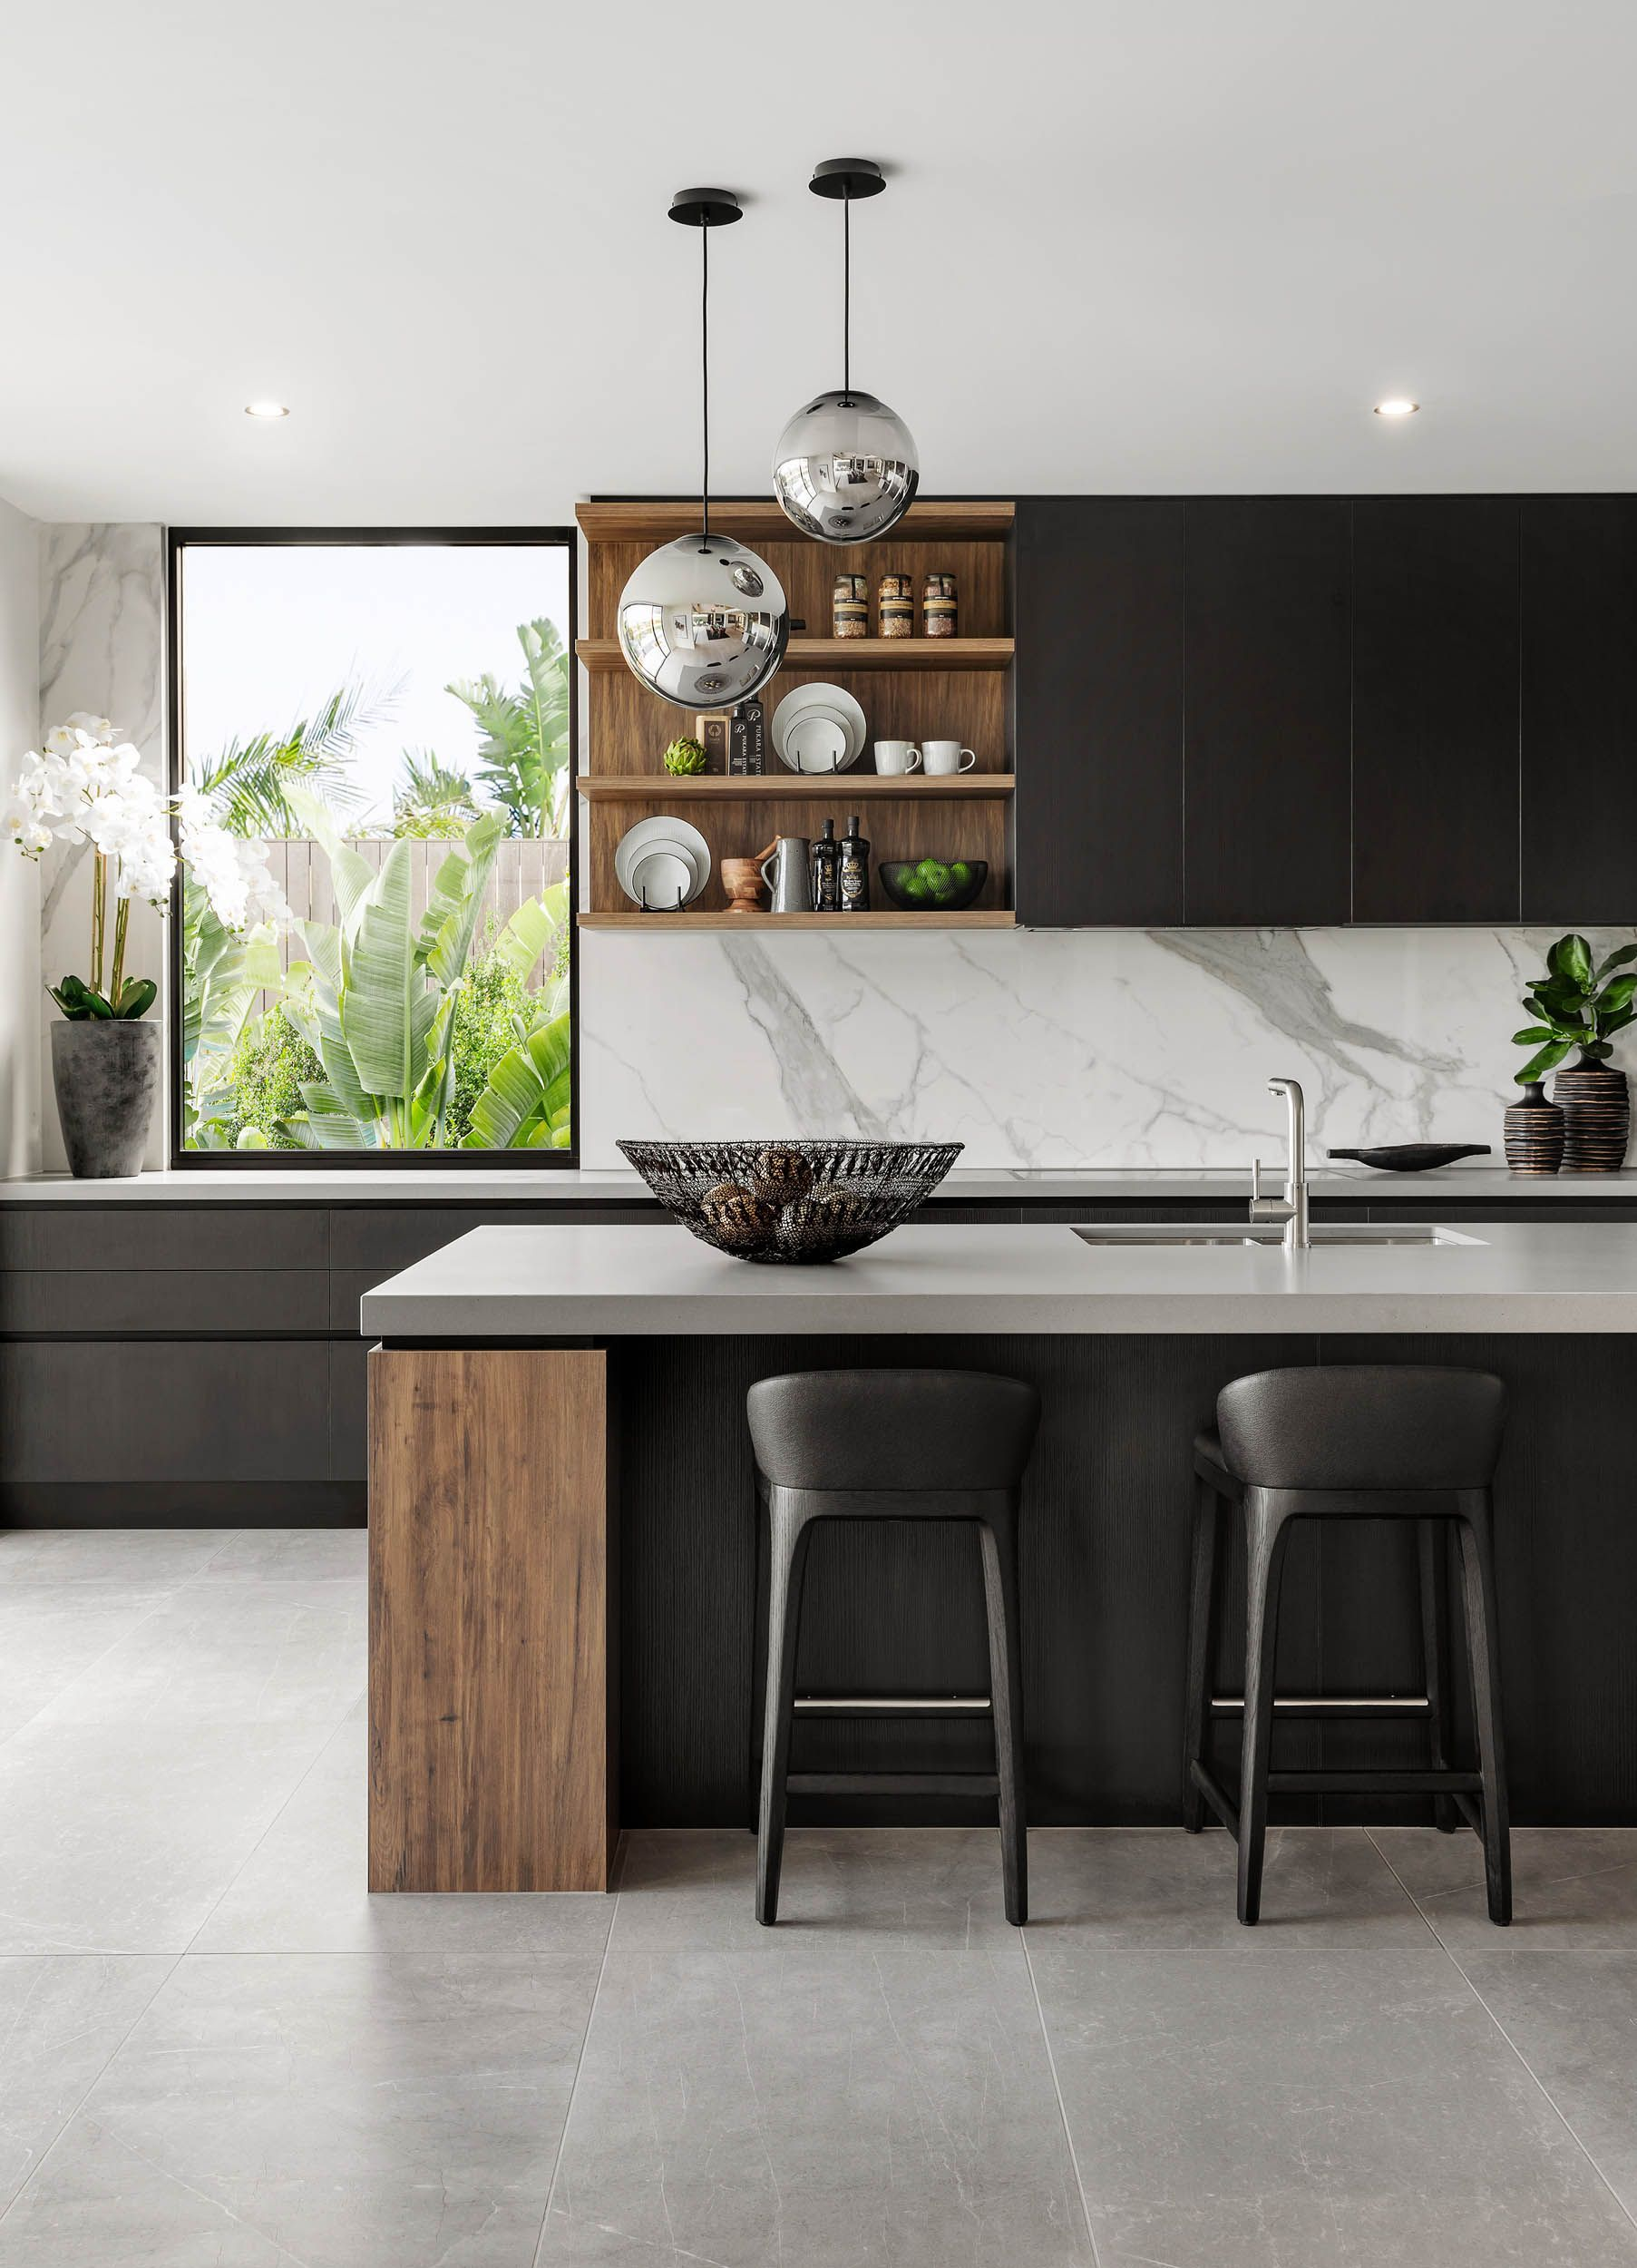 Discover ideas about kitchen dinning room also the signature by metricon riviera on display in sorrento rh pinterest